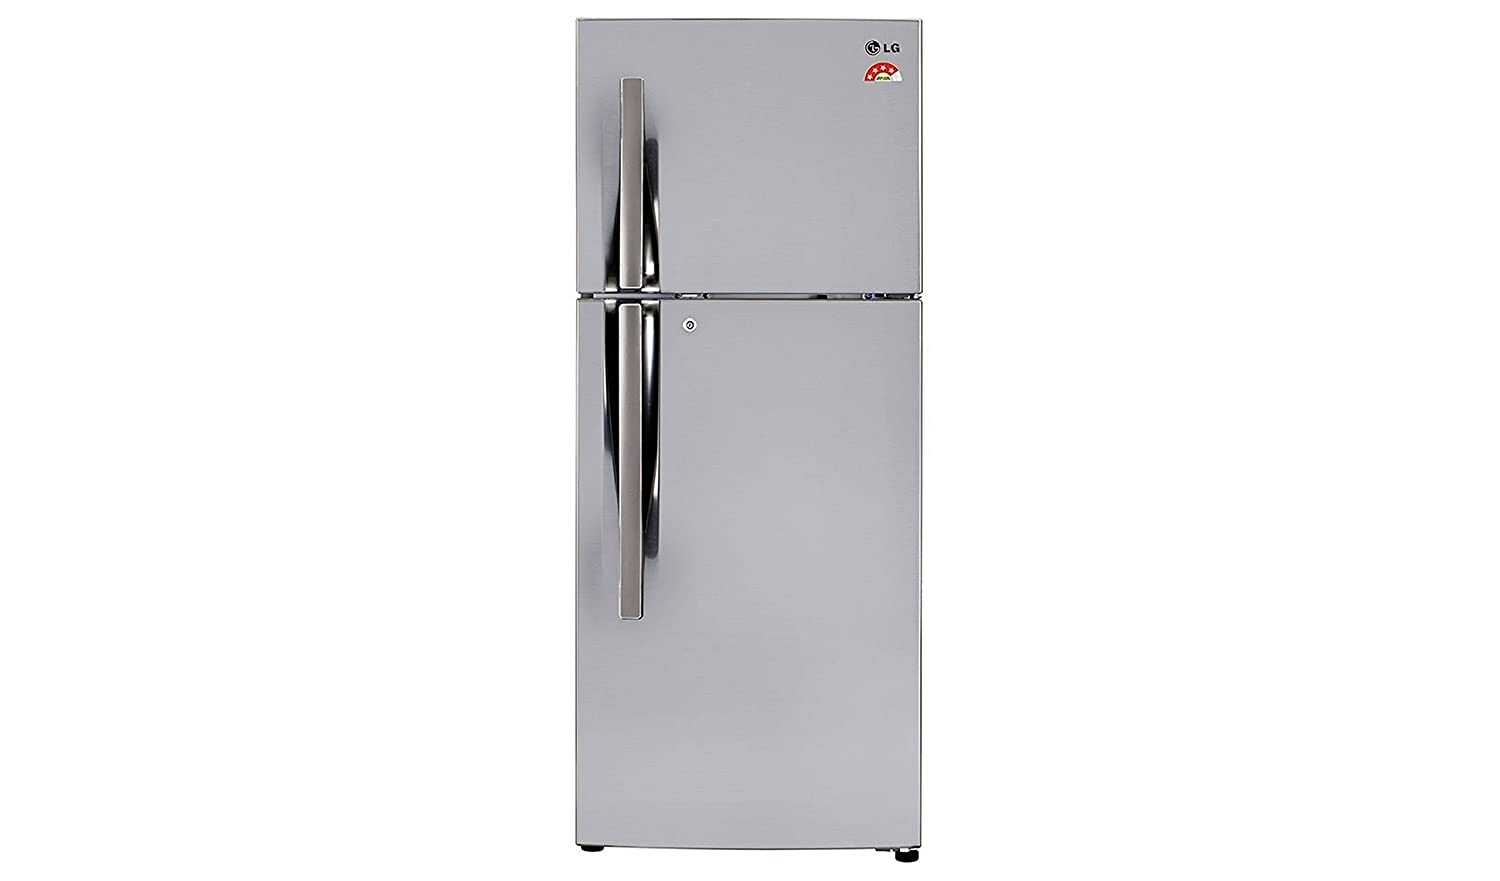 LG GL-I292RPZL Frost-free Double-door Refrigerator (260 Ltrs, 4 Star Rating, Shiny Steel) By Amazon @ Rs.24,766